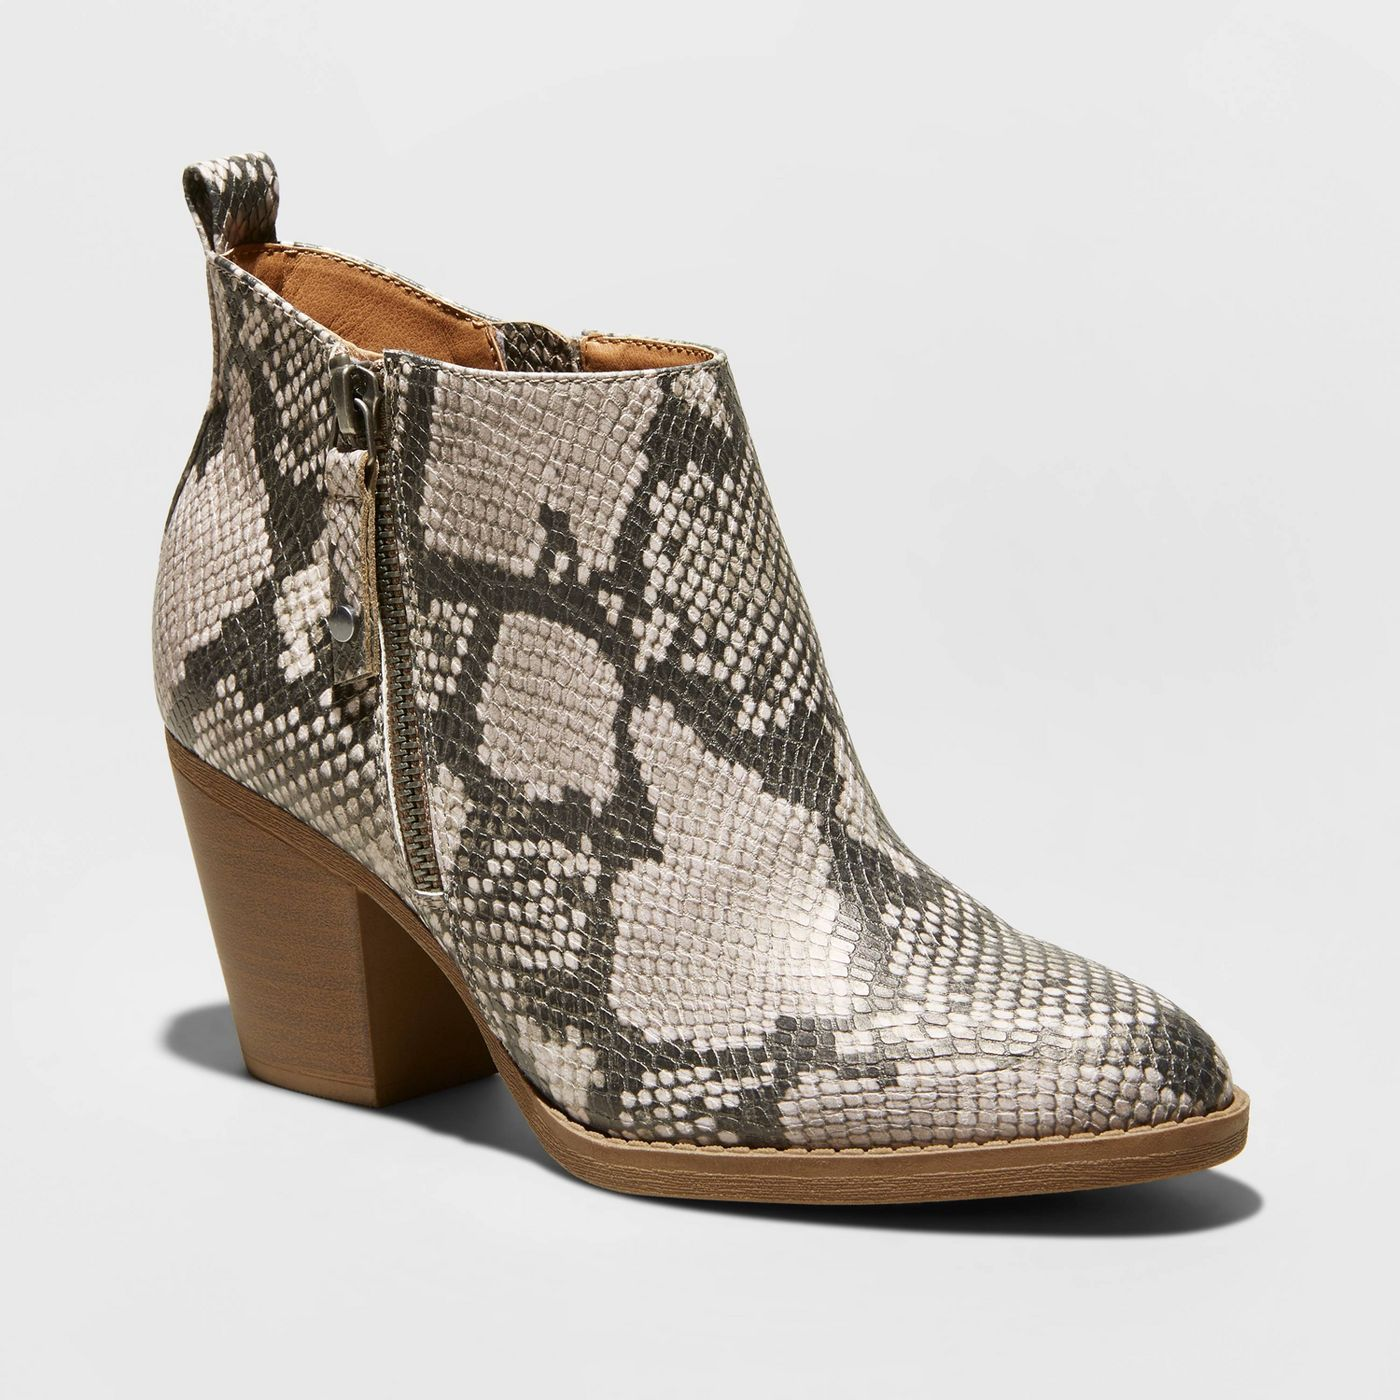 Check out this budget friends snake skin boot that's on trend and super popular for fall 2019!